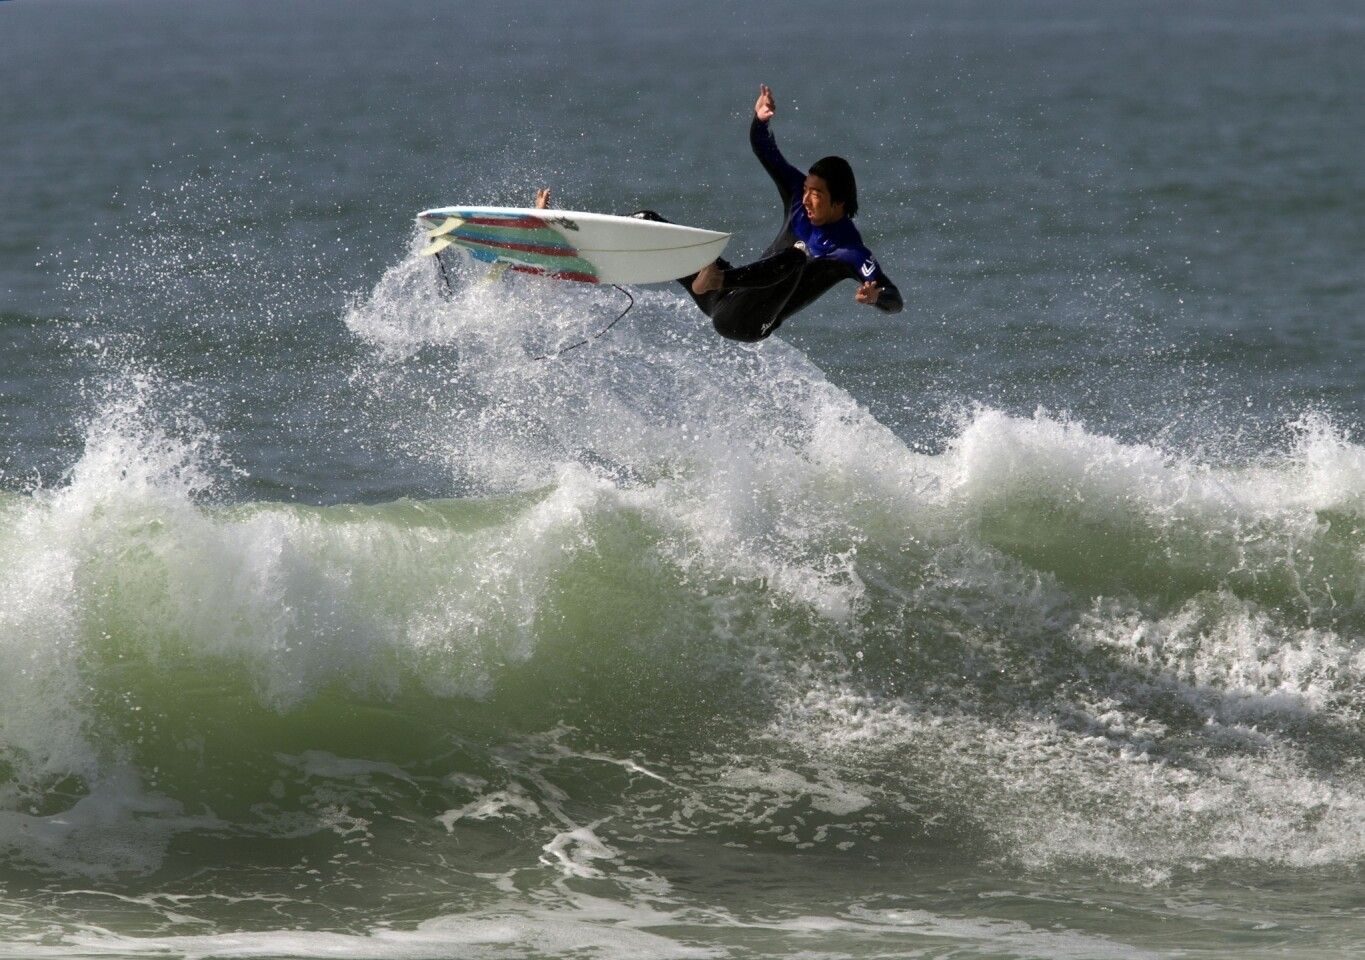 A surfer goes airborne high over a big wave at the Newport Beach jetties Wednesday.